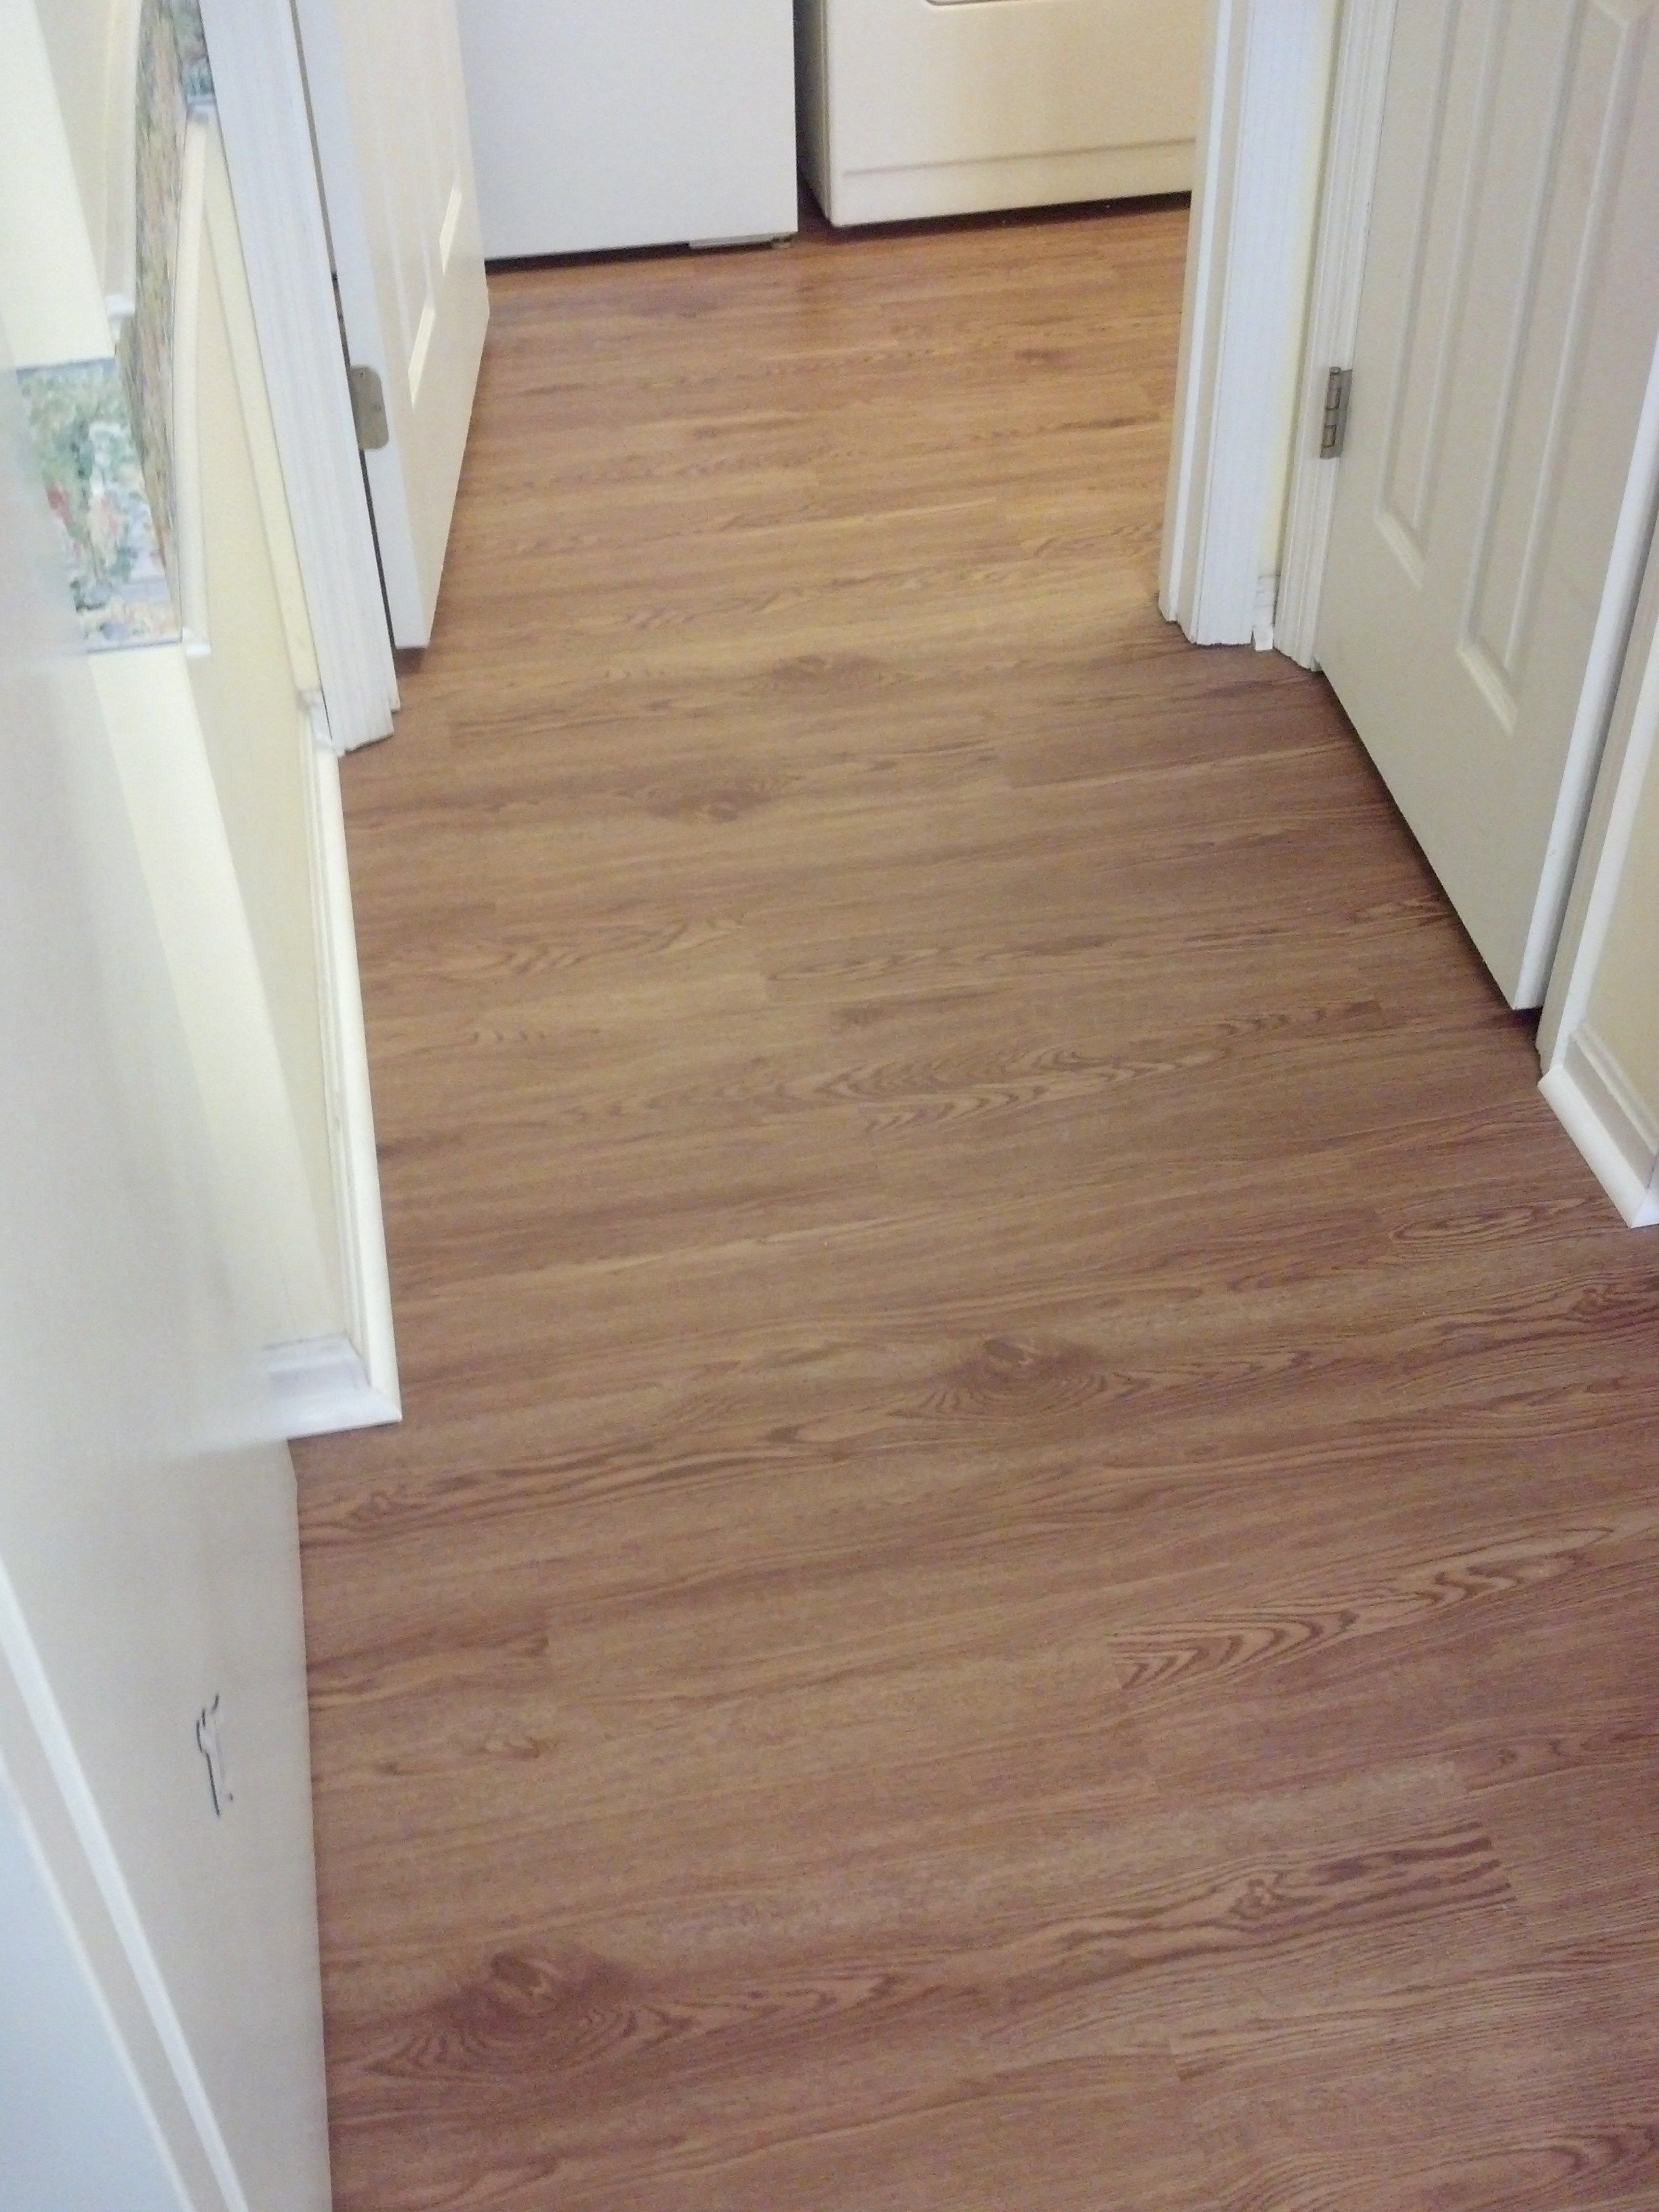 14 Stunning Hardwood Looking Vinyl Flooring 2021 free download hardwood looking vinyl flooring of luxury vinyl plank flooring made by earthwerks and sold and pertaining to luxury vinyl plank flooring made by earthwerks and sold and installed by http